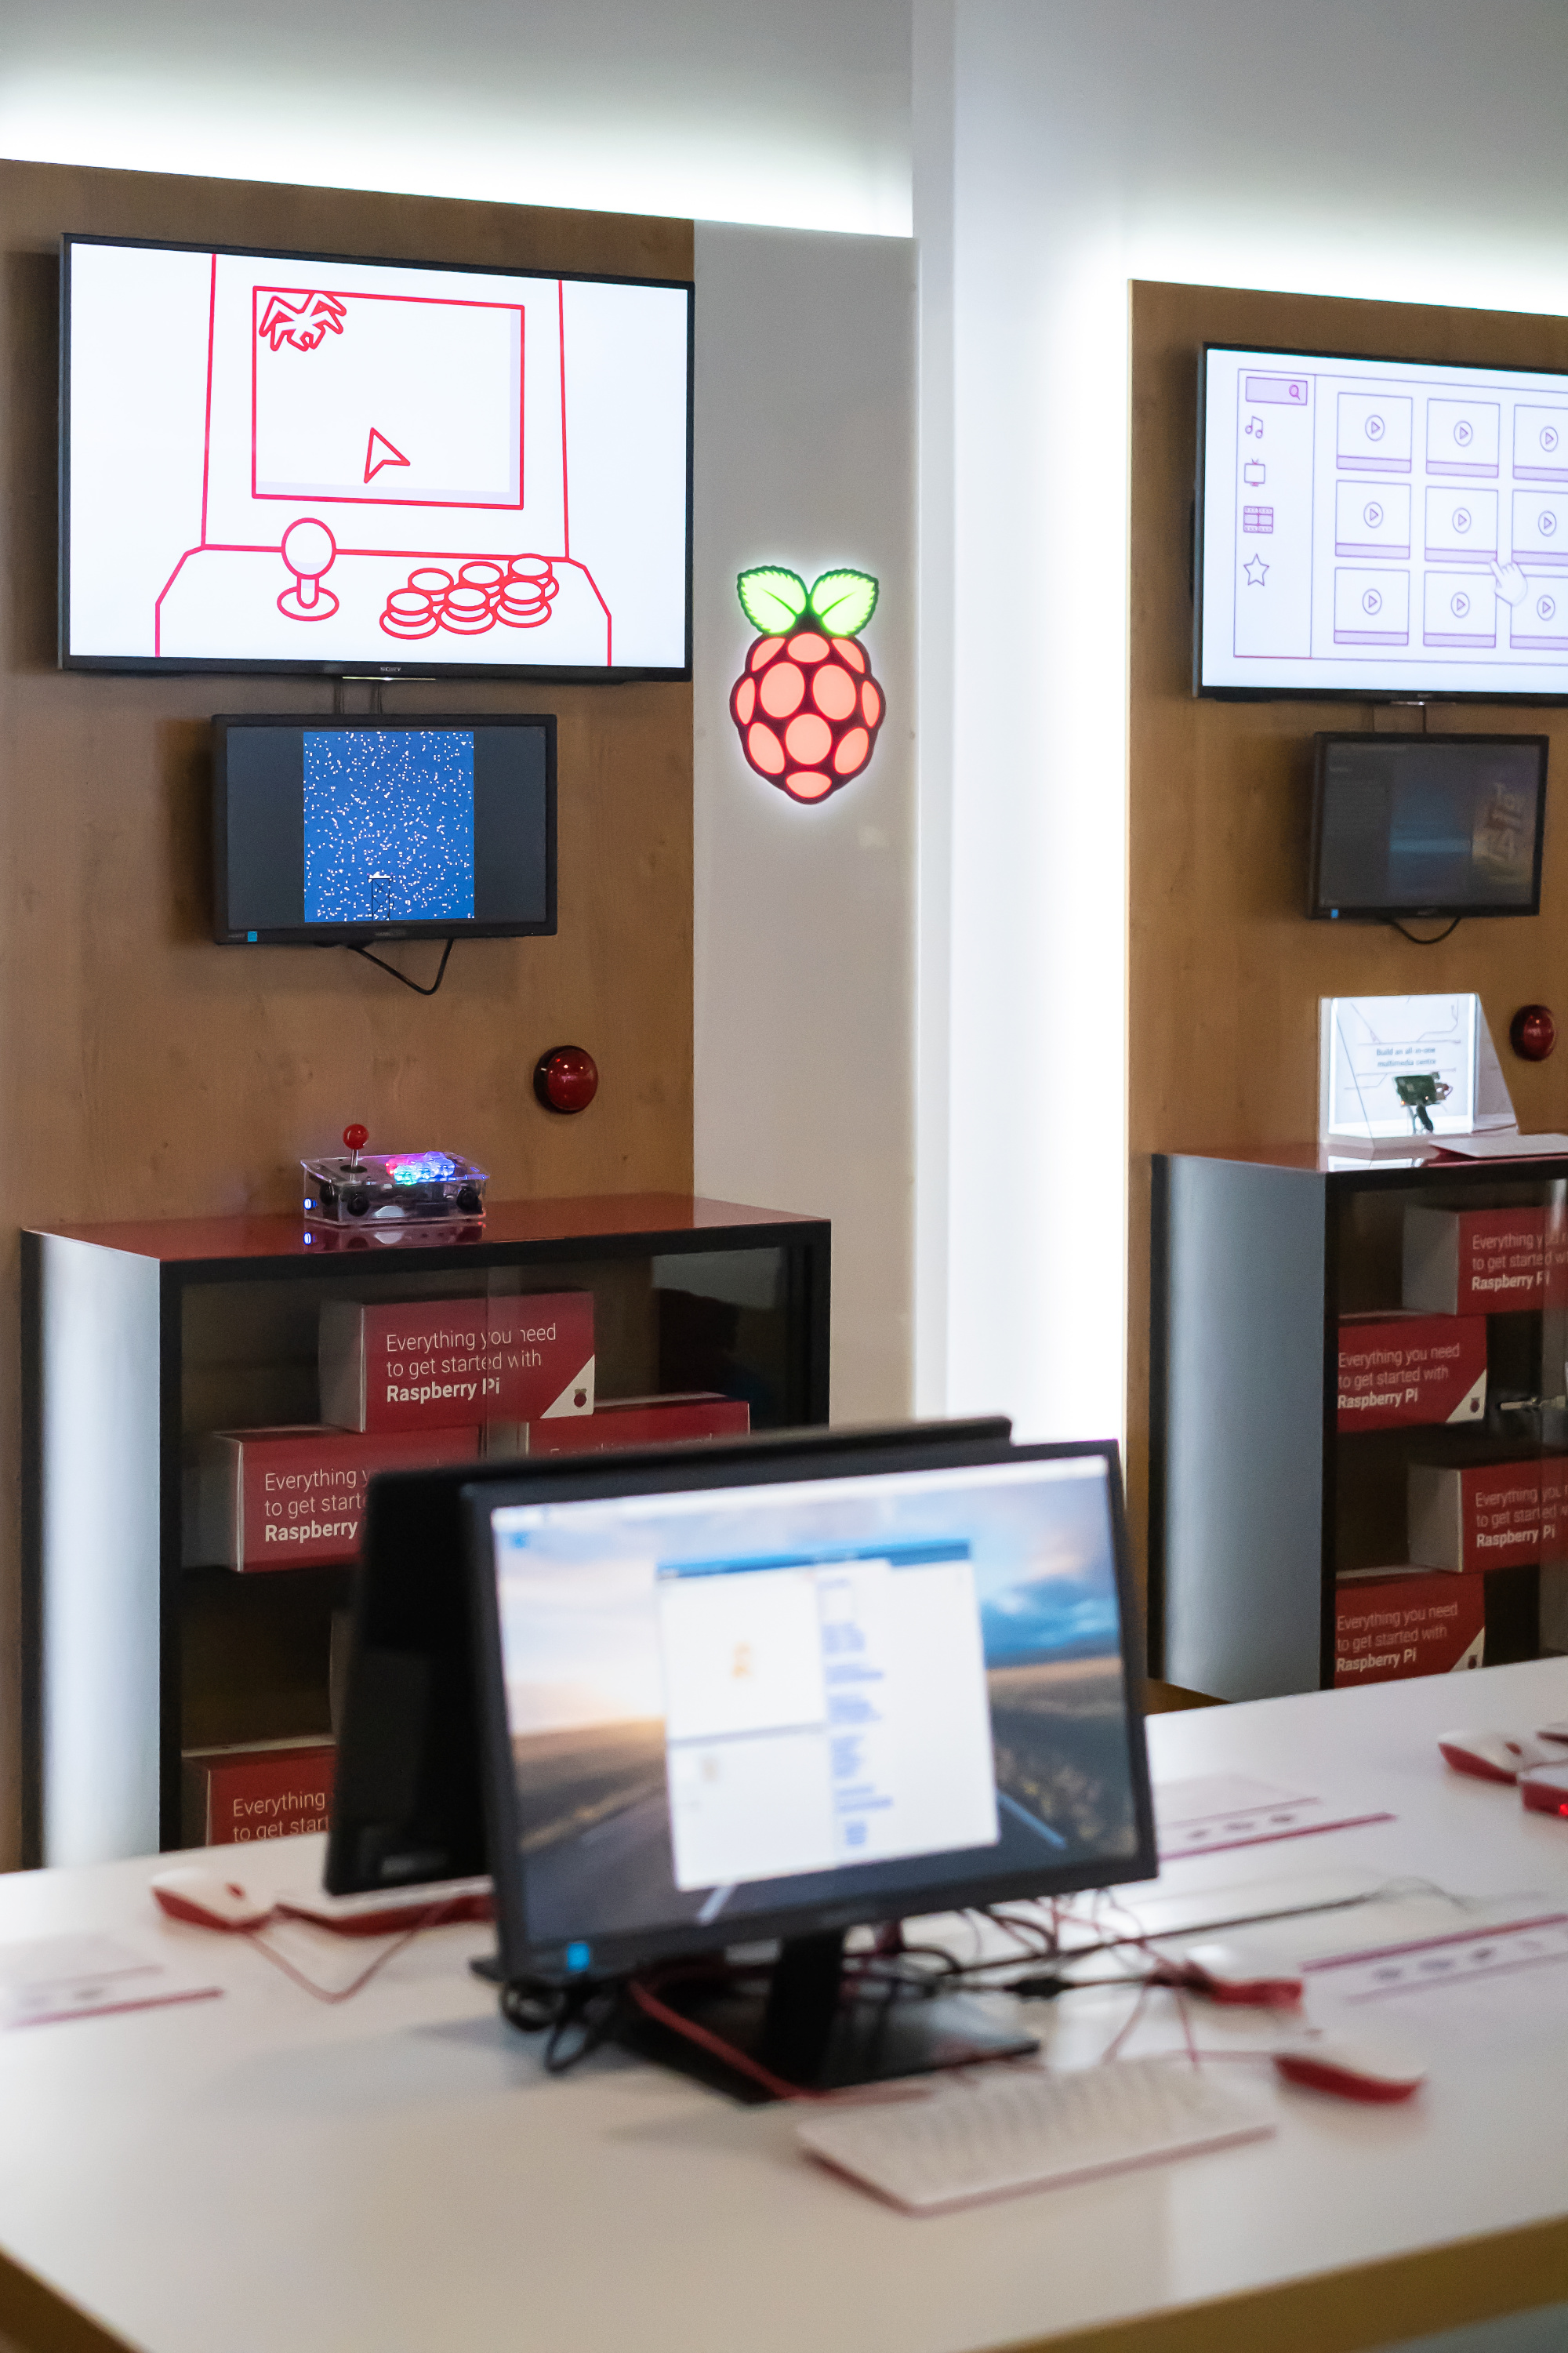 Project booths are used to demonstrate Raspberry Pi coding and making